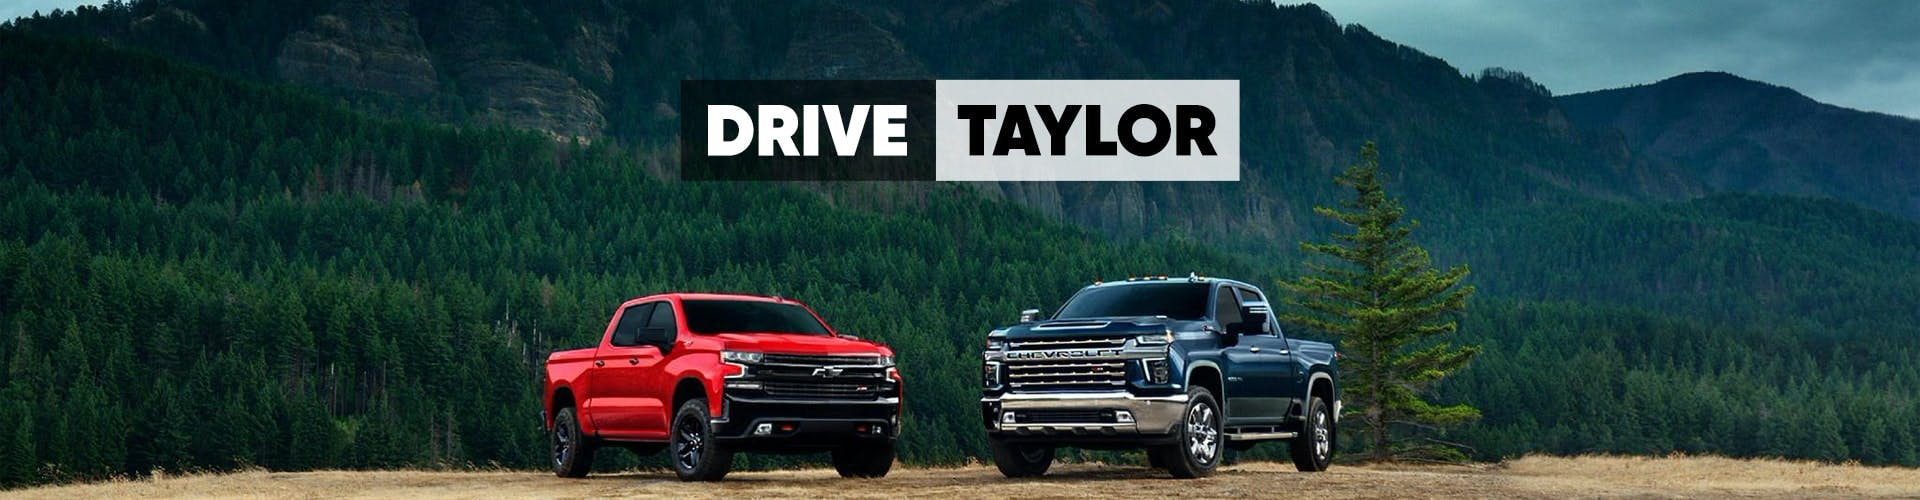 Offer - Drive Taylor